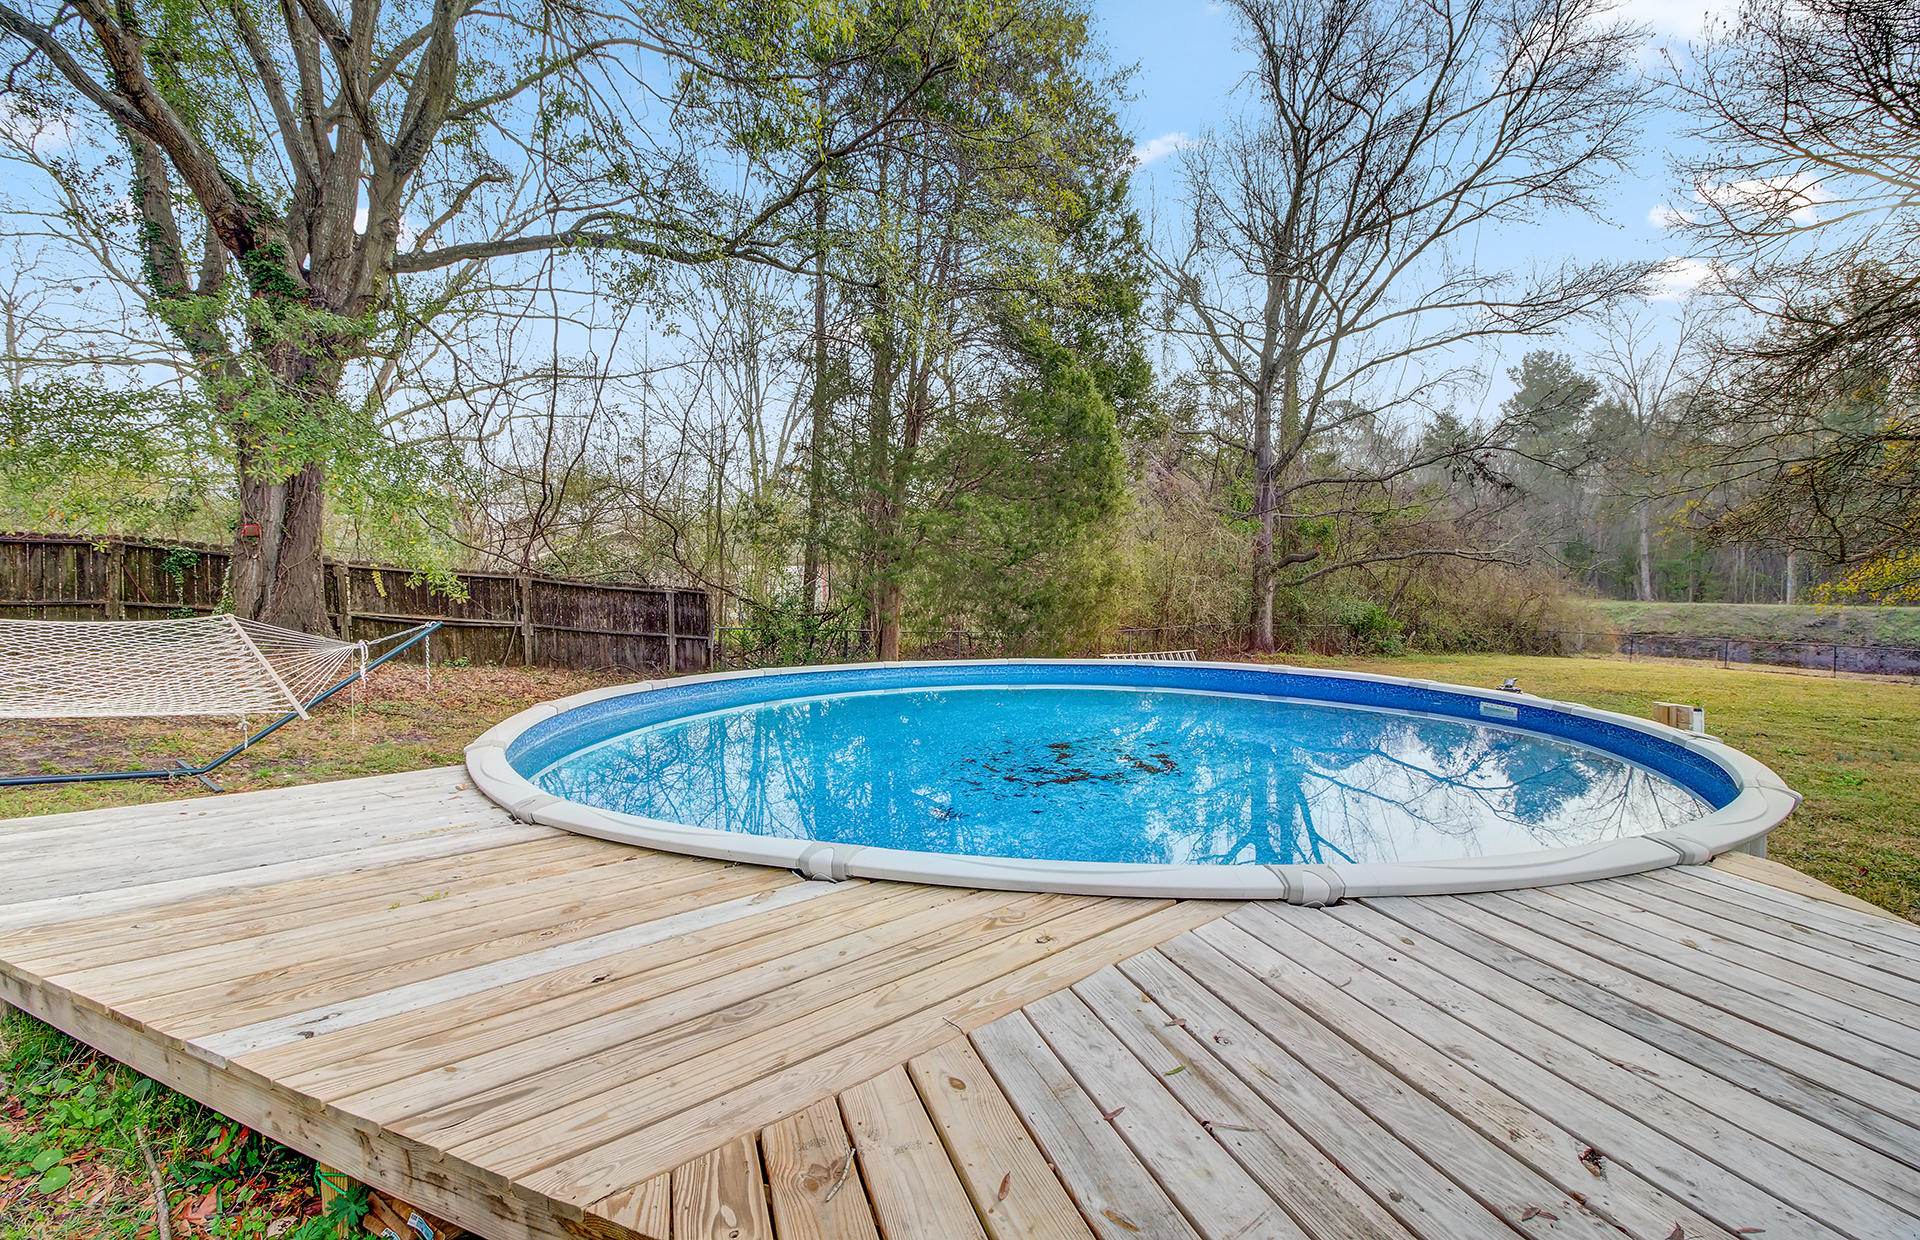 Tranquil Acres Homes For Sale - 134 Tranquil, Ladson, SC - 14